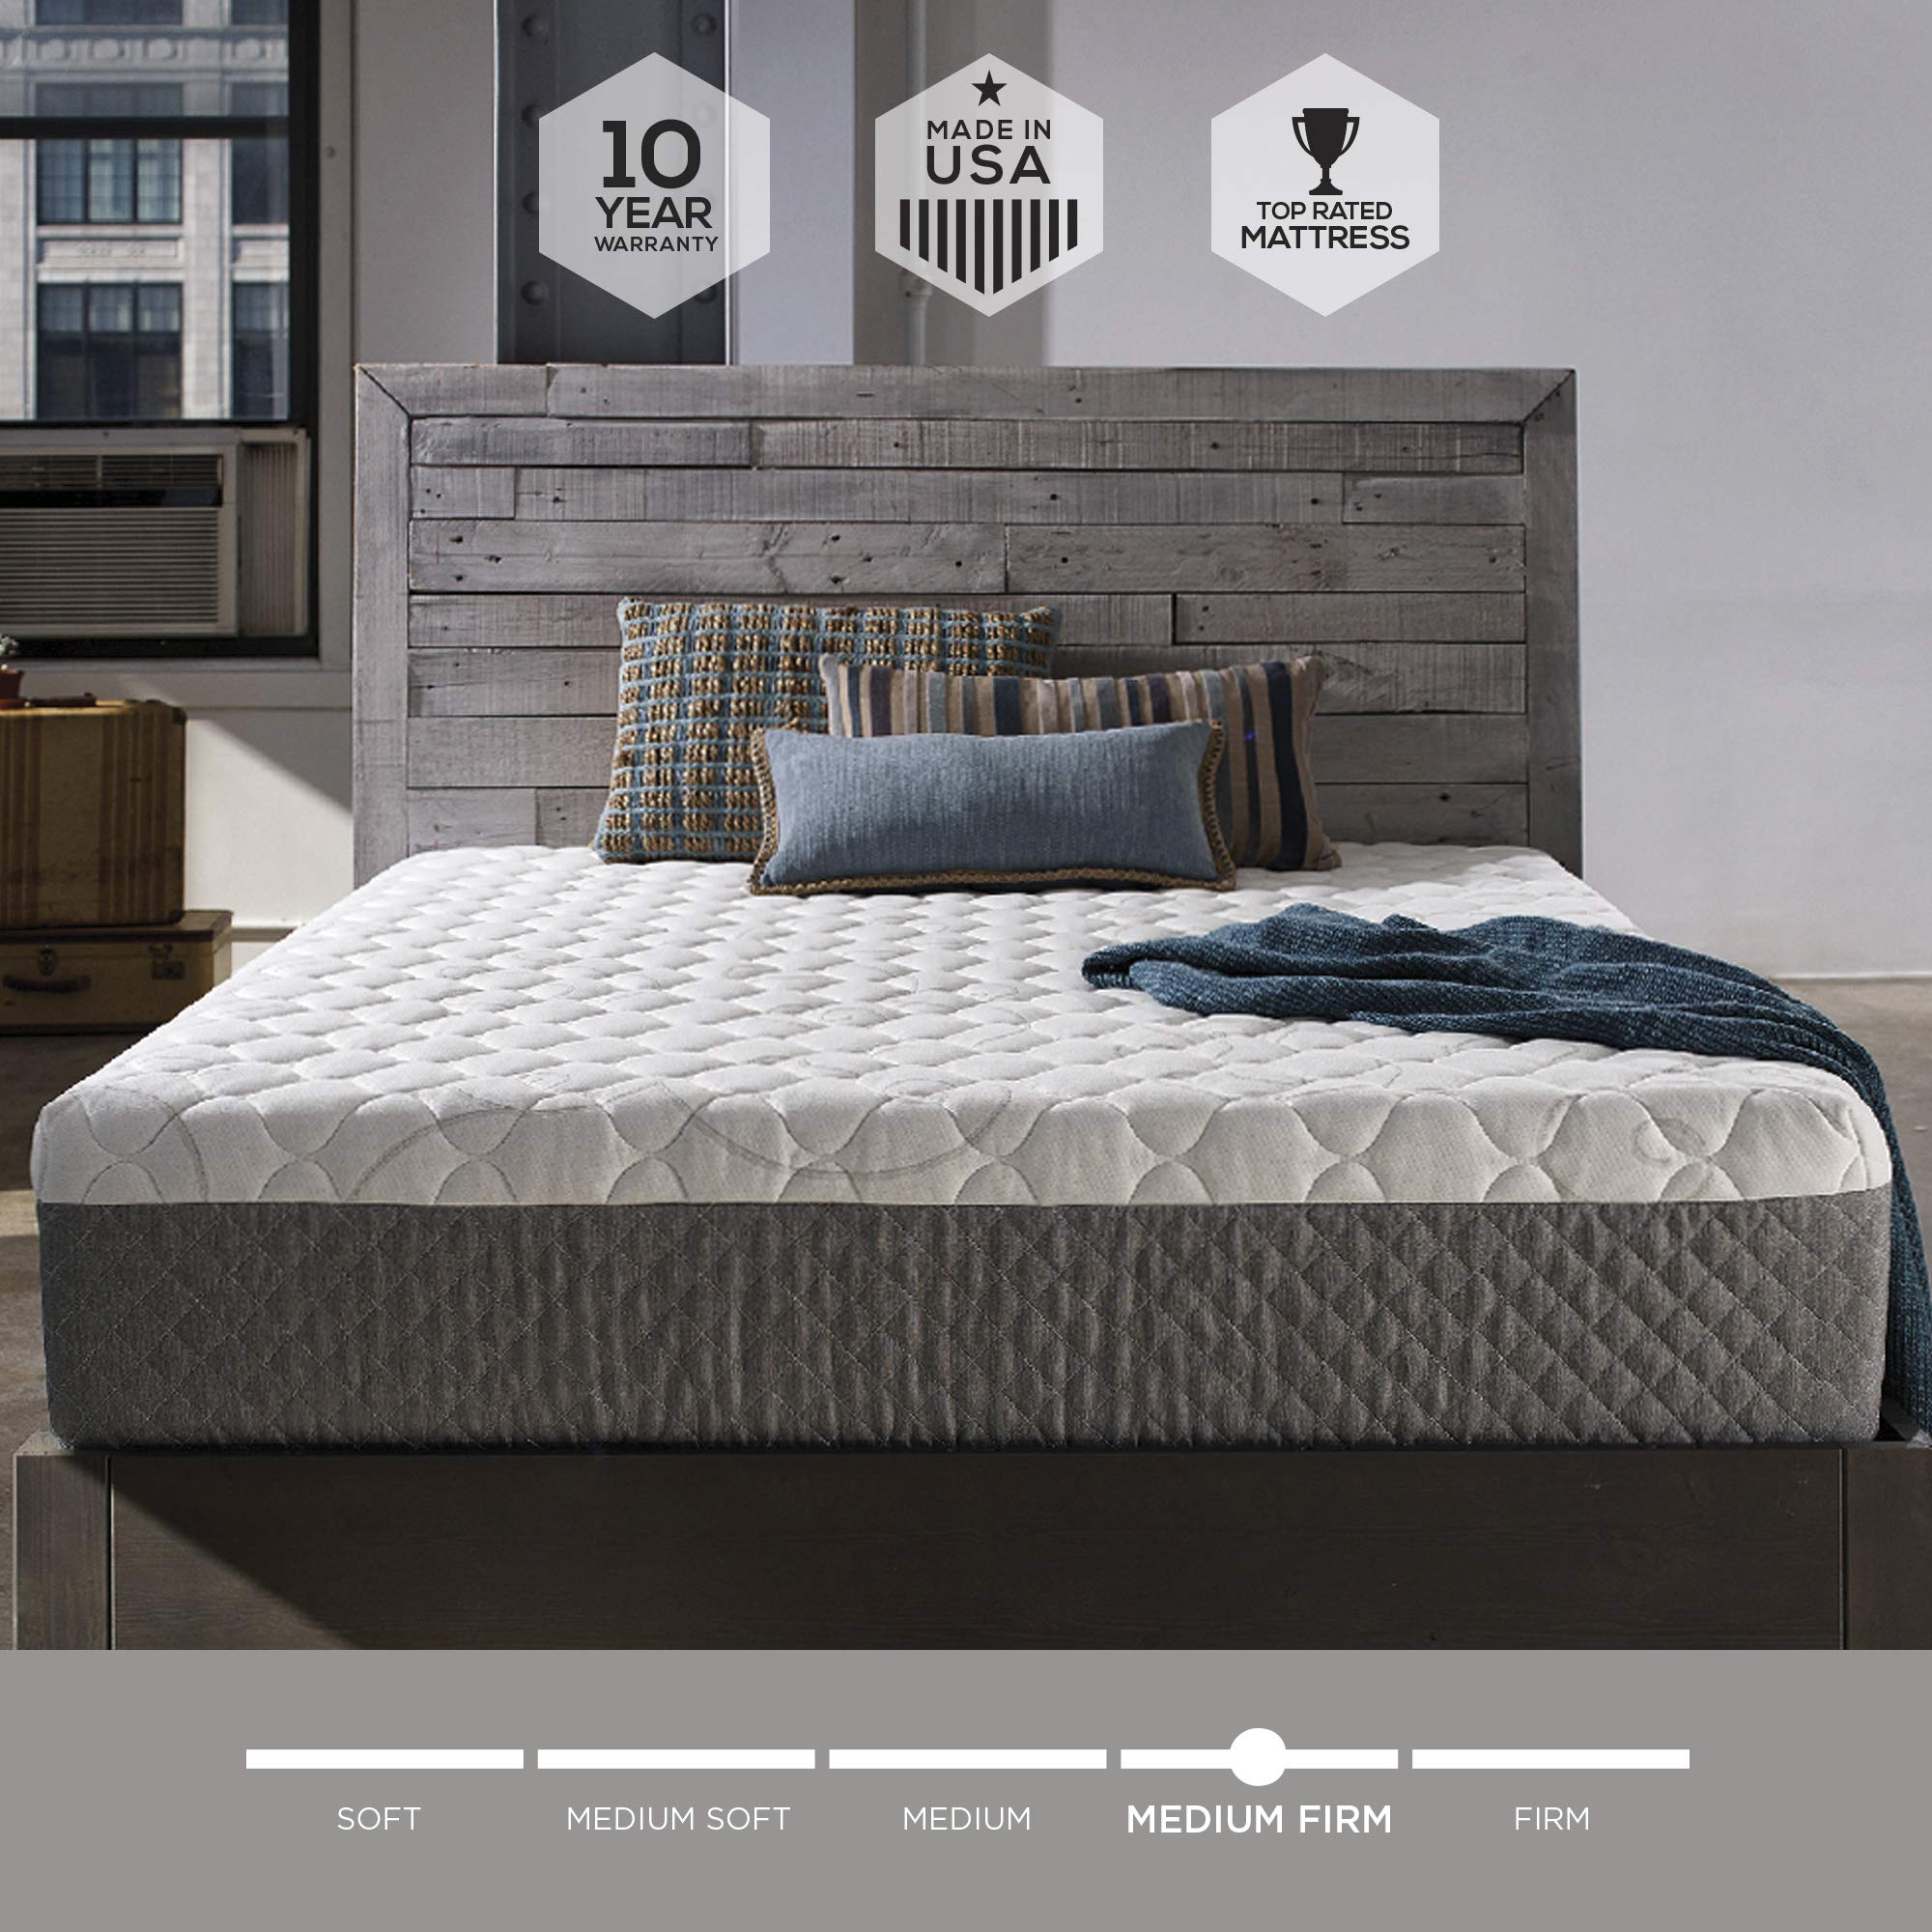 Sleep Innovations Taylor 12-inch Gel Memory Foam, Original Cover Mattress, King, White by Sleep Innovations